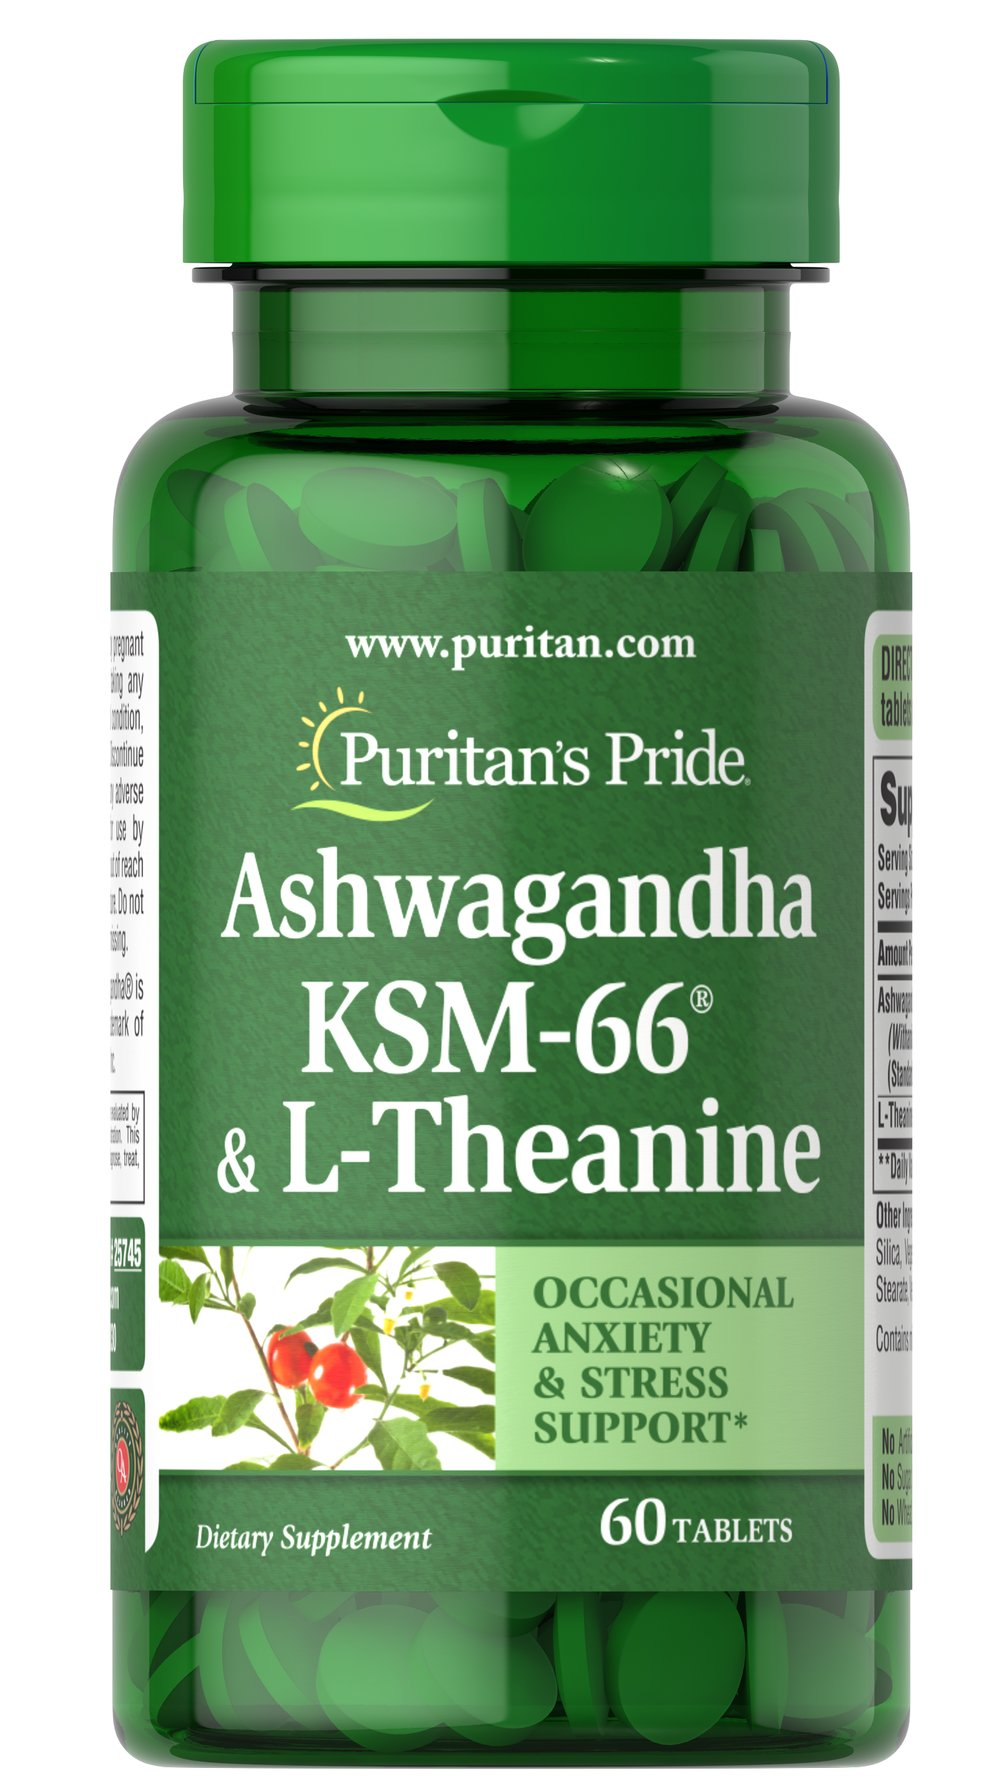 Ashwagandha KSM-66® & L-Theanine Thumbnail Alternate Bottle View